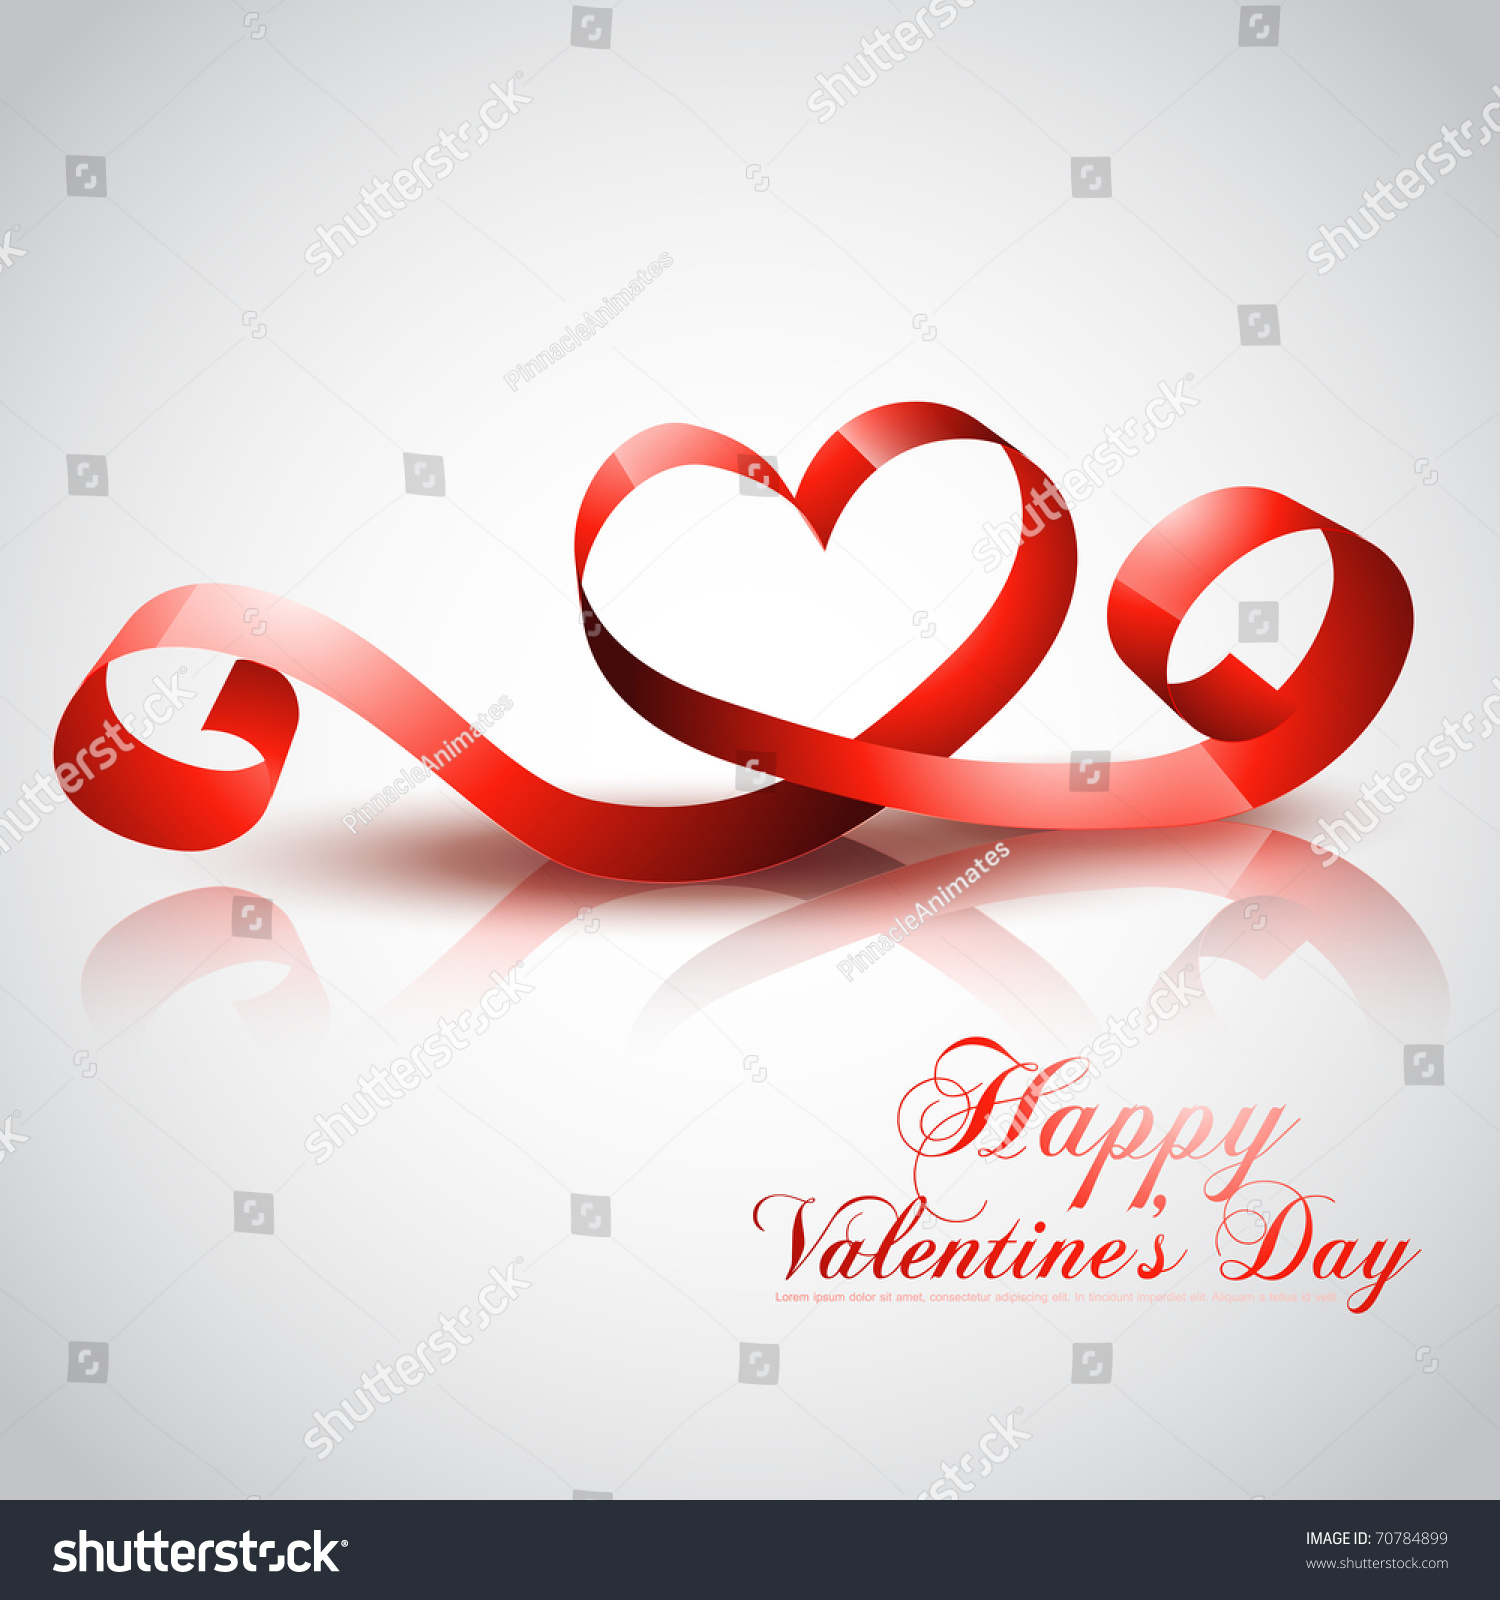 beautiful valentine day heart design made stock vector, Beautiful flower